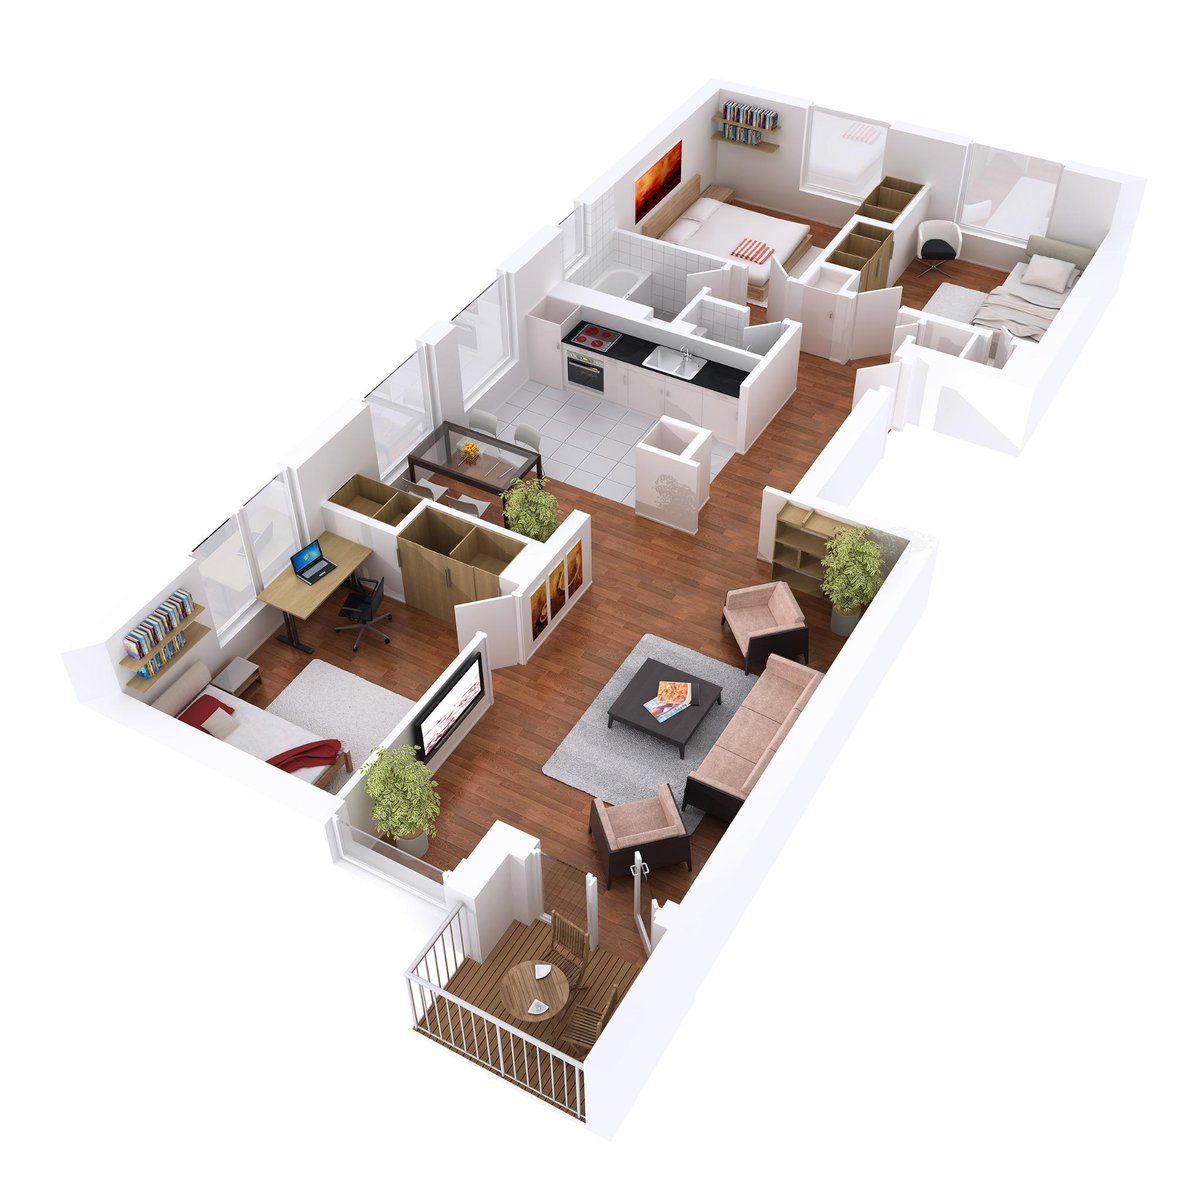 55 Luxury 3d Floor Plan Software Free Download Full: 3d Grundriss. Derag Derag With 3d Grundriss. Awesome